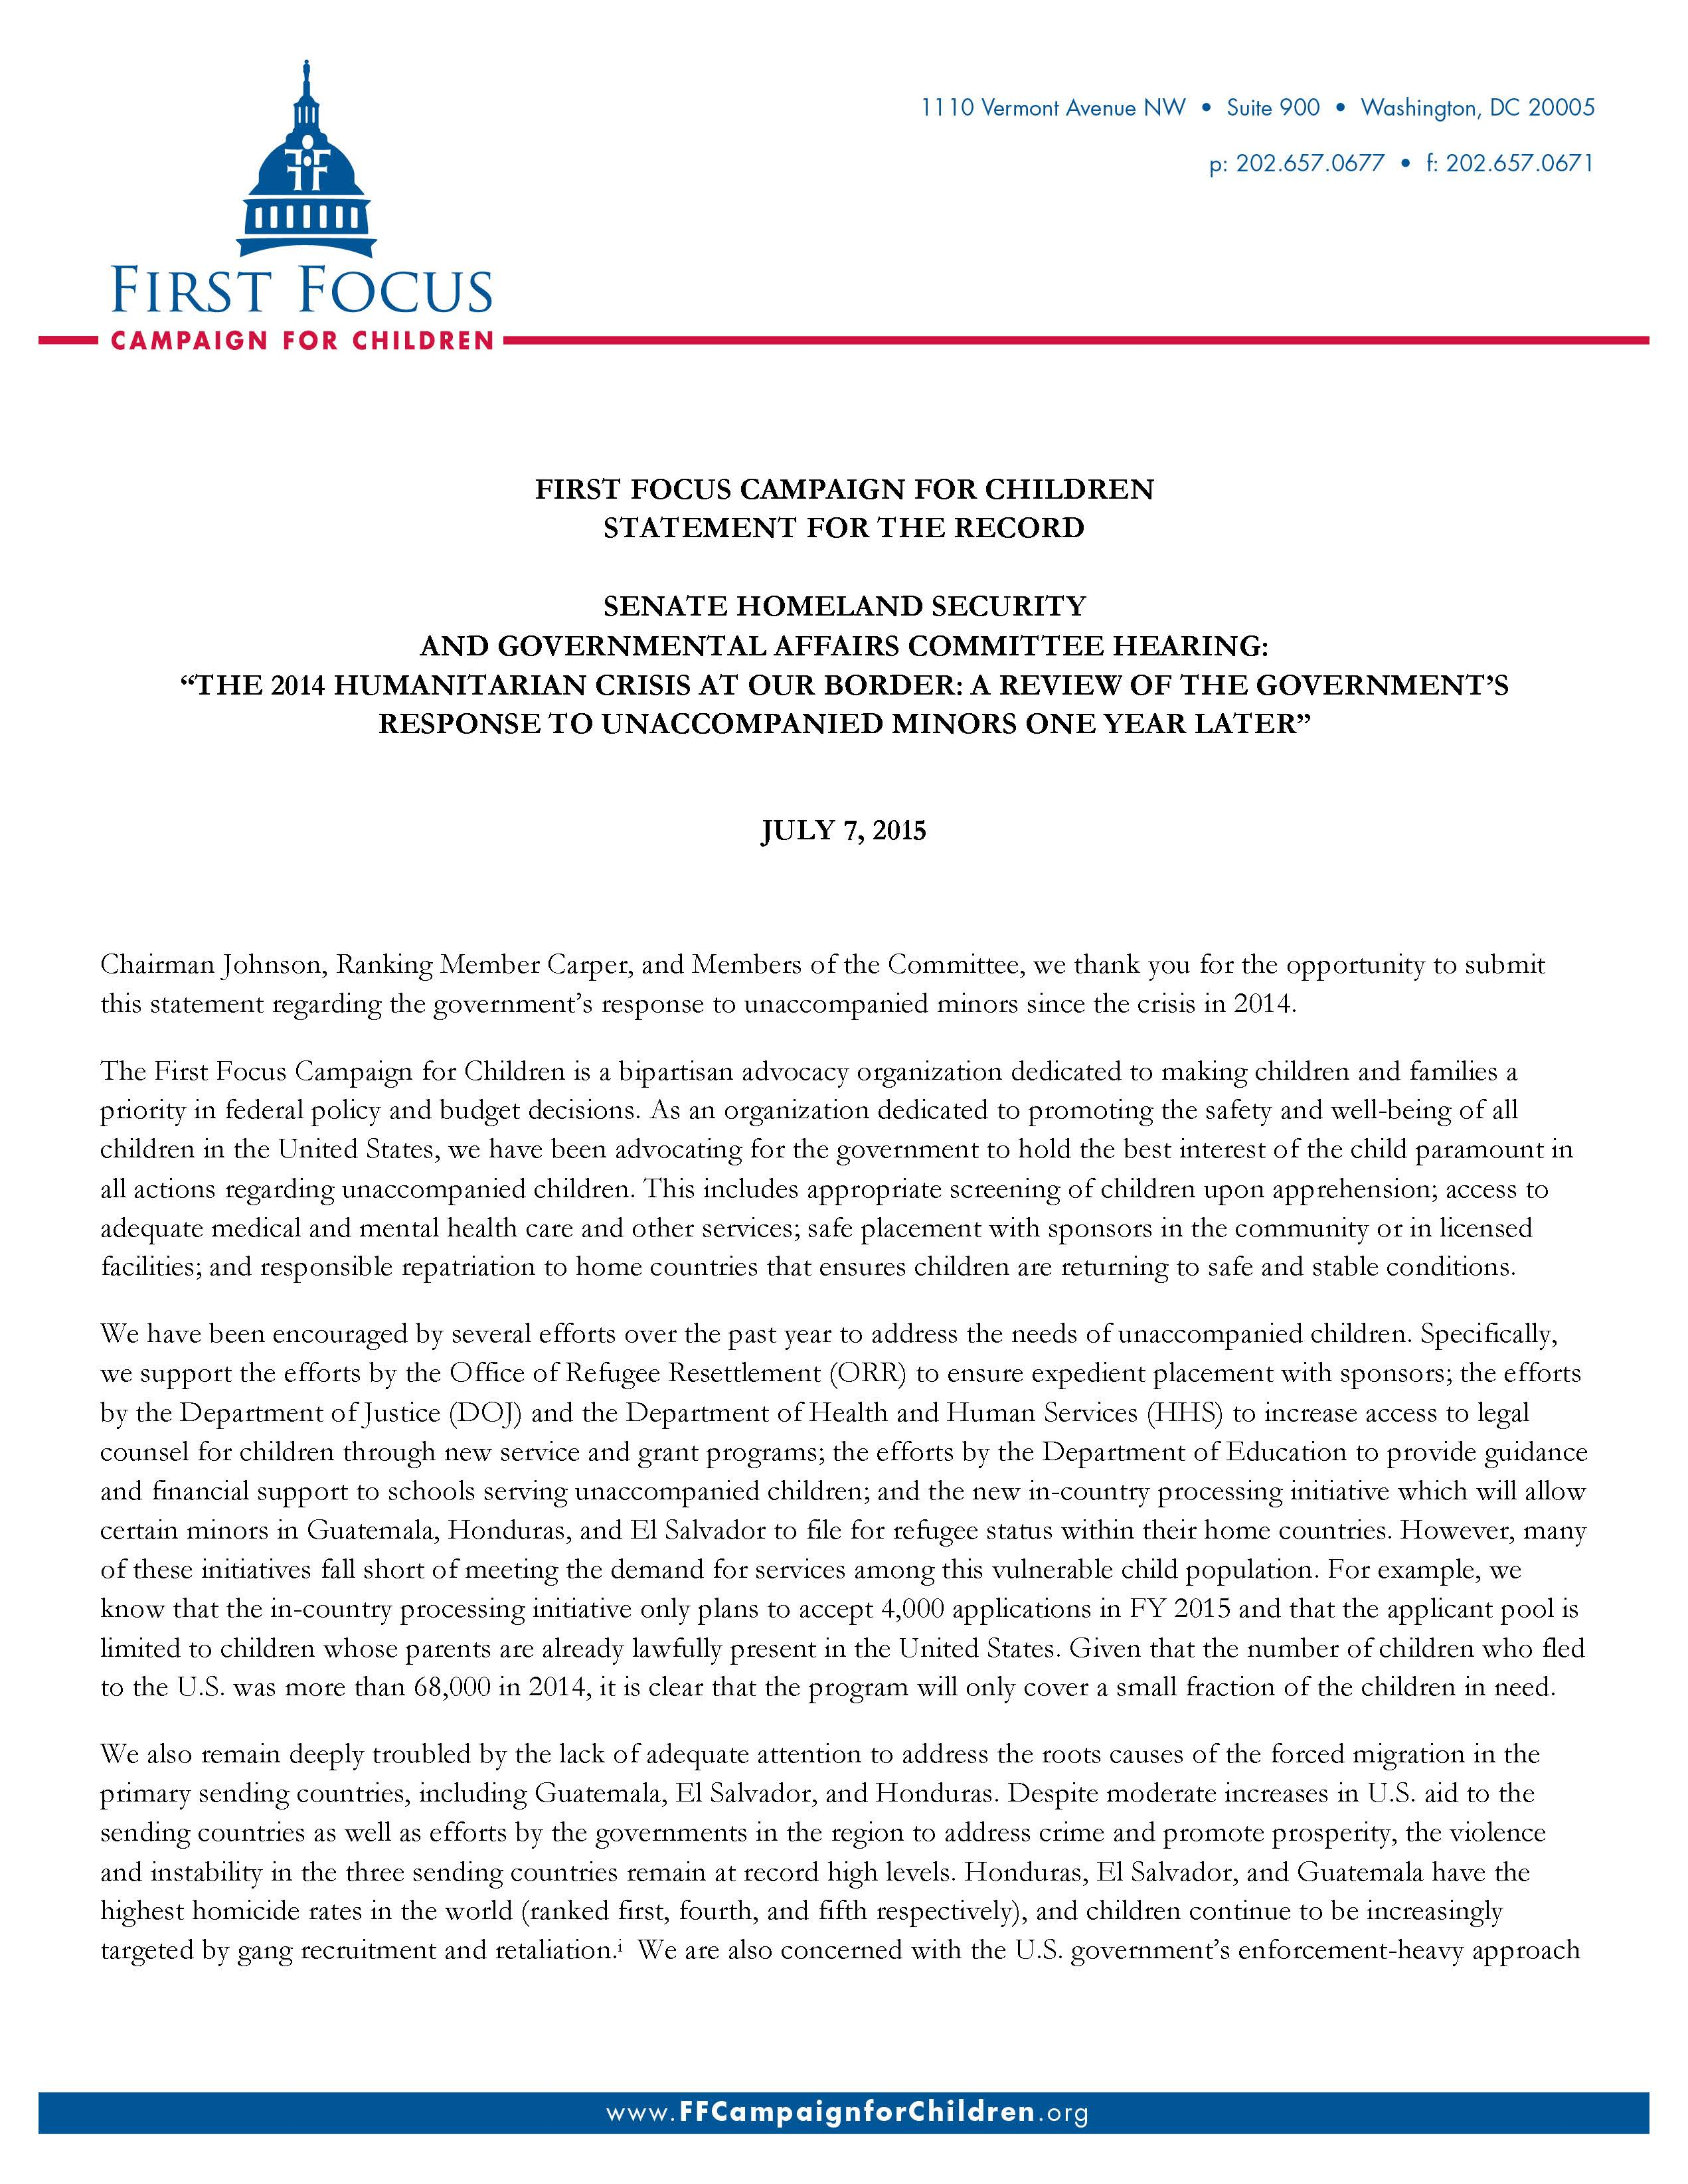 FFCC Statement for Senate Homeland Security Governmental Affairs Committee hearing 7 7 15_Page_1